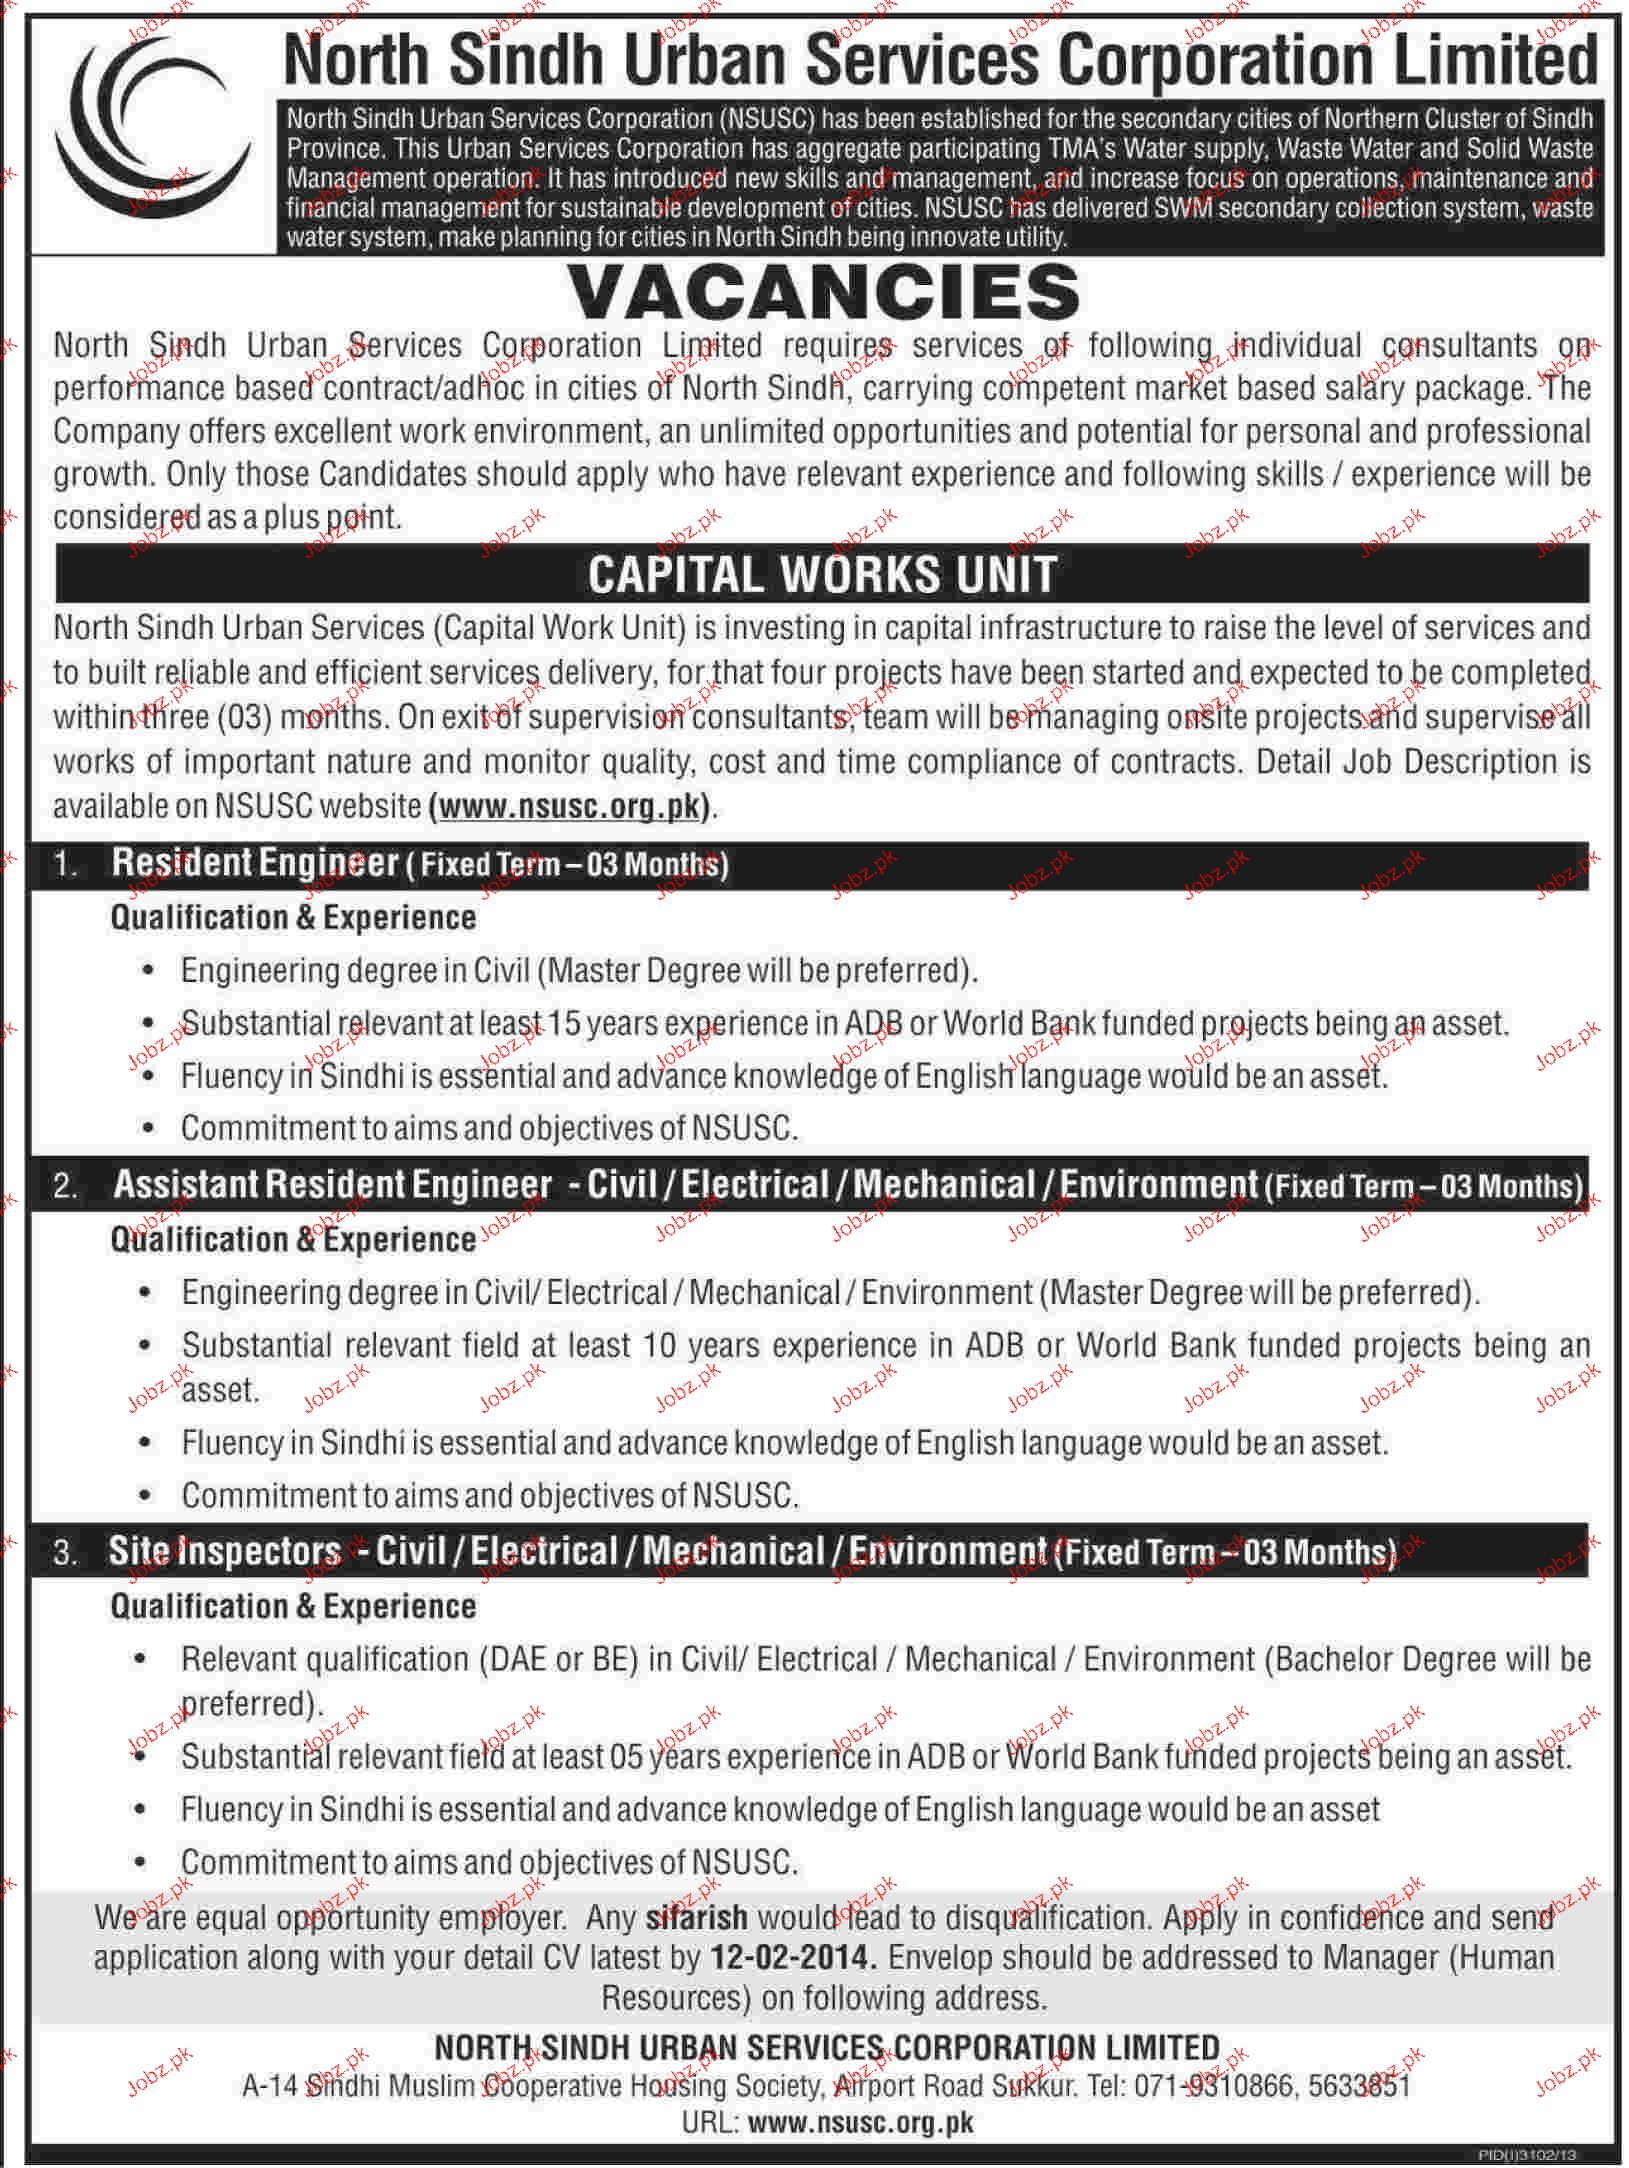 Resident Engineers, Assistant Resident Engineers Wanted